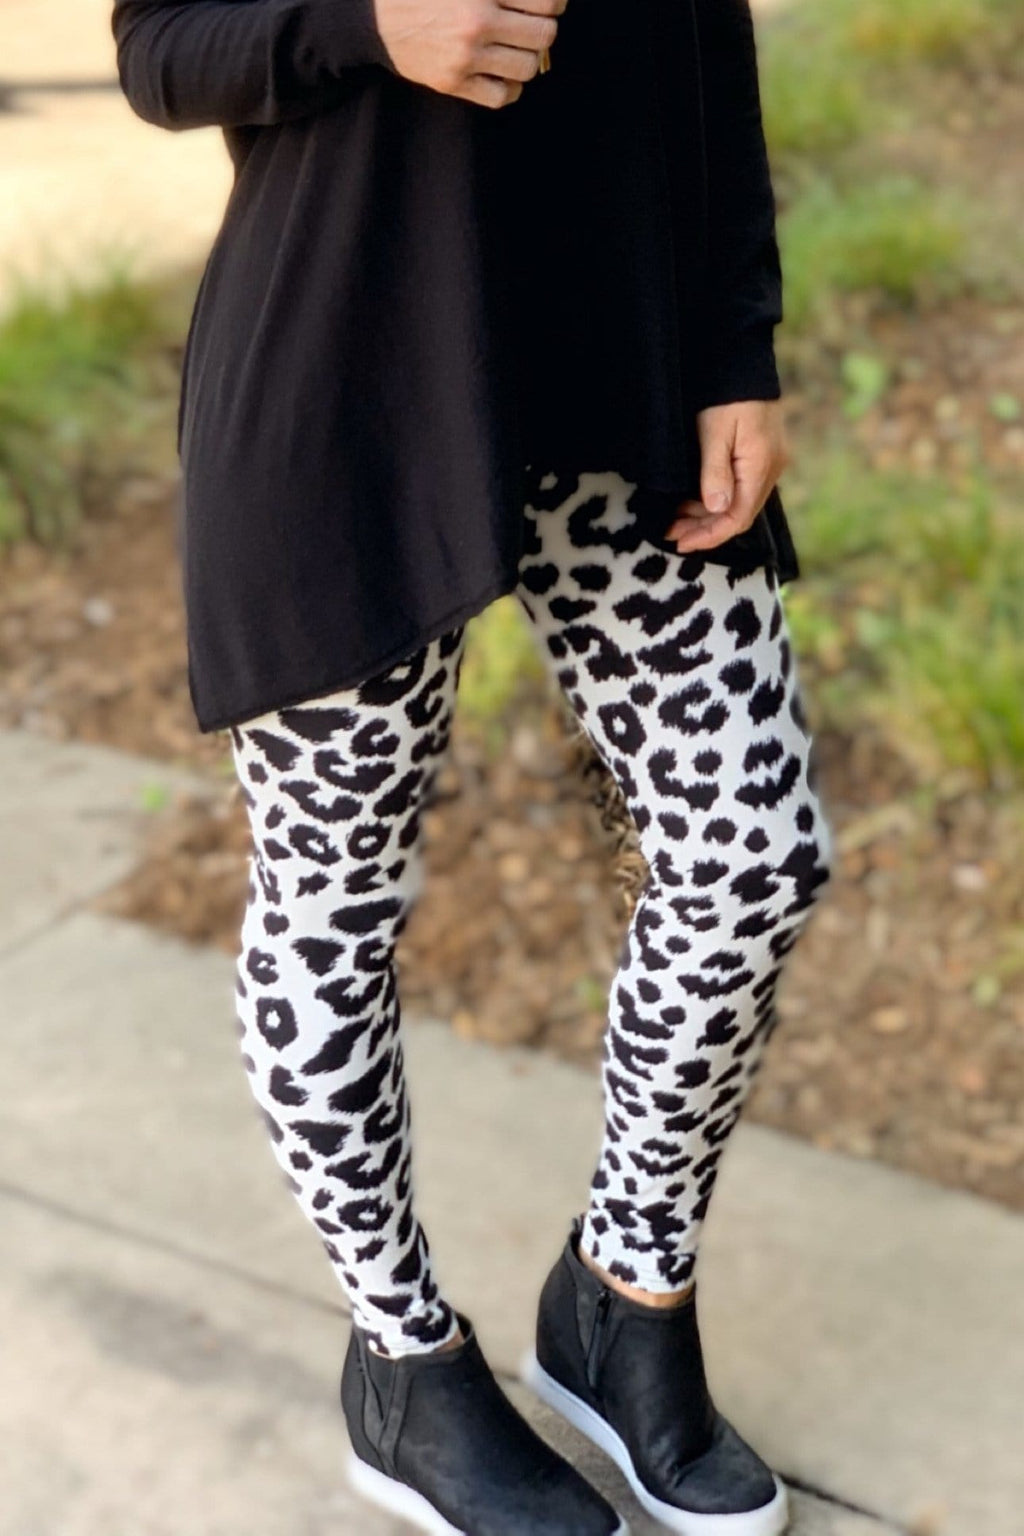 WILD RUN ANIMAL PRINT LEGGINGS-WHITE/BLACK - Infinity Raine